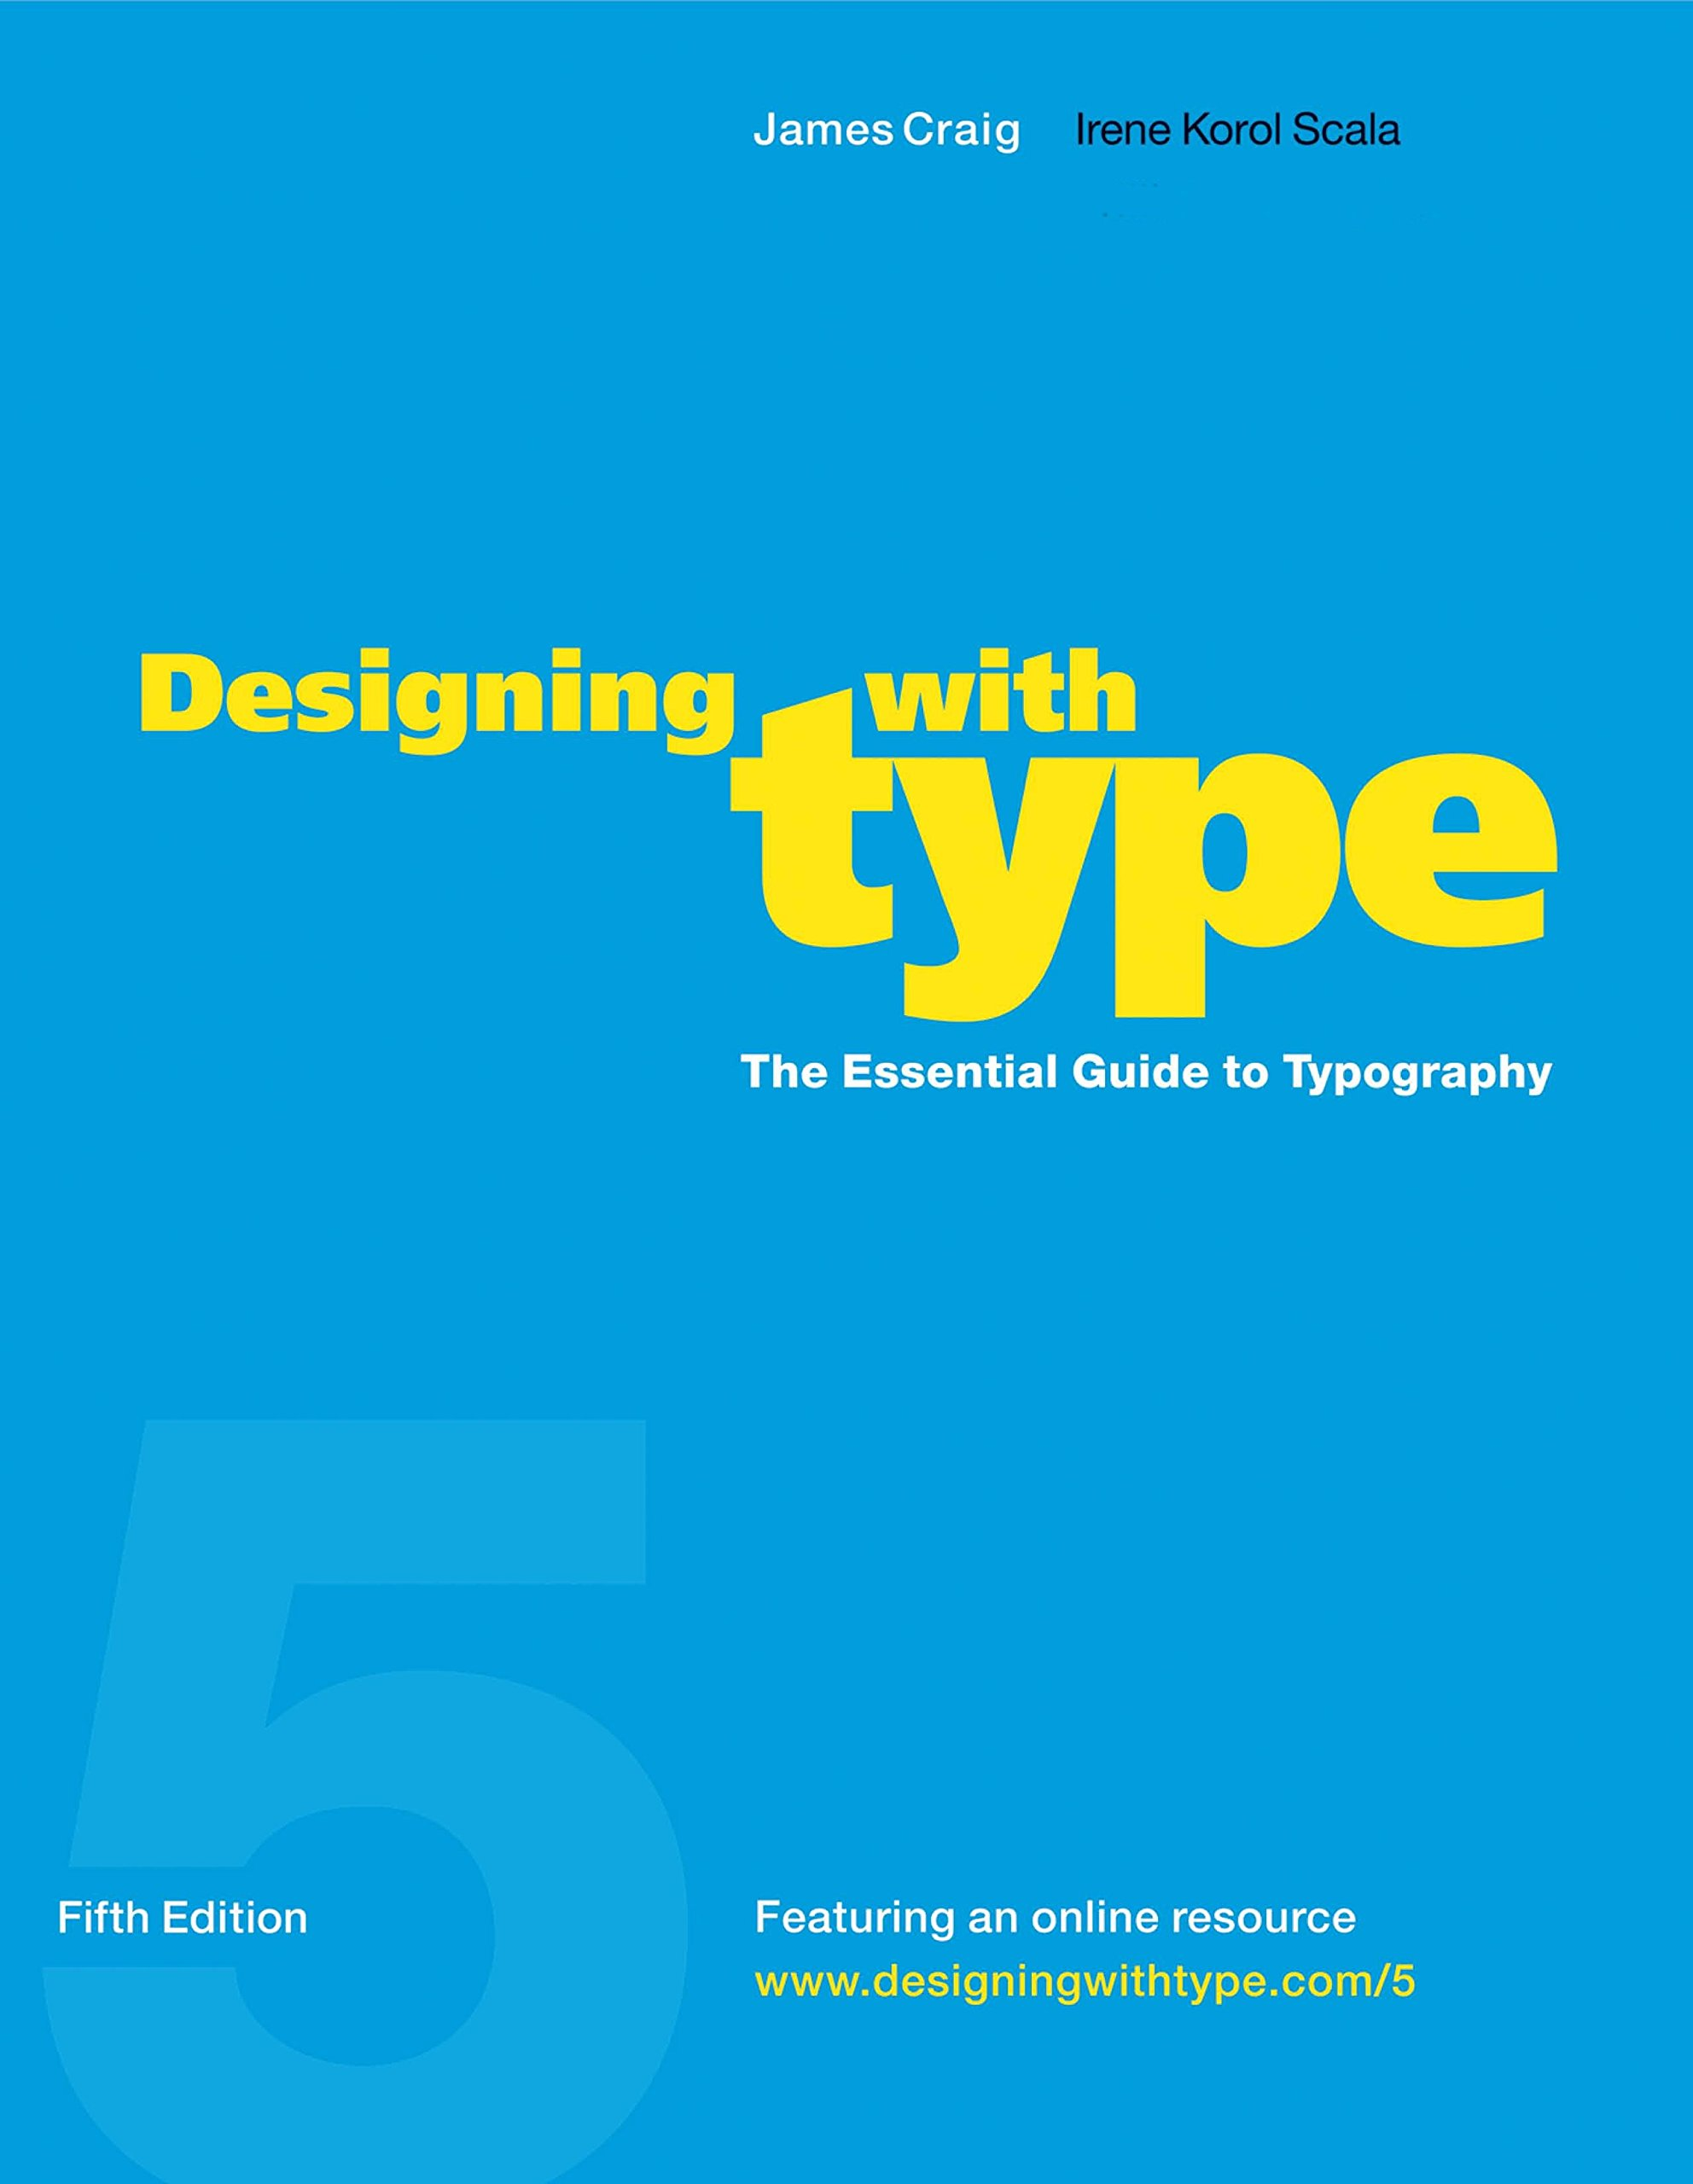 Designing with Type, 5th Edition: The Essential Guide to Typography by Watson-Guptill Publications